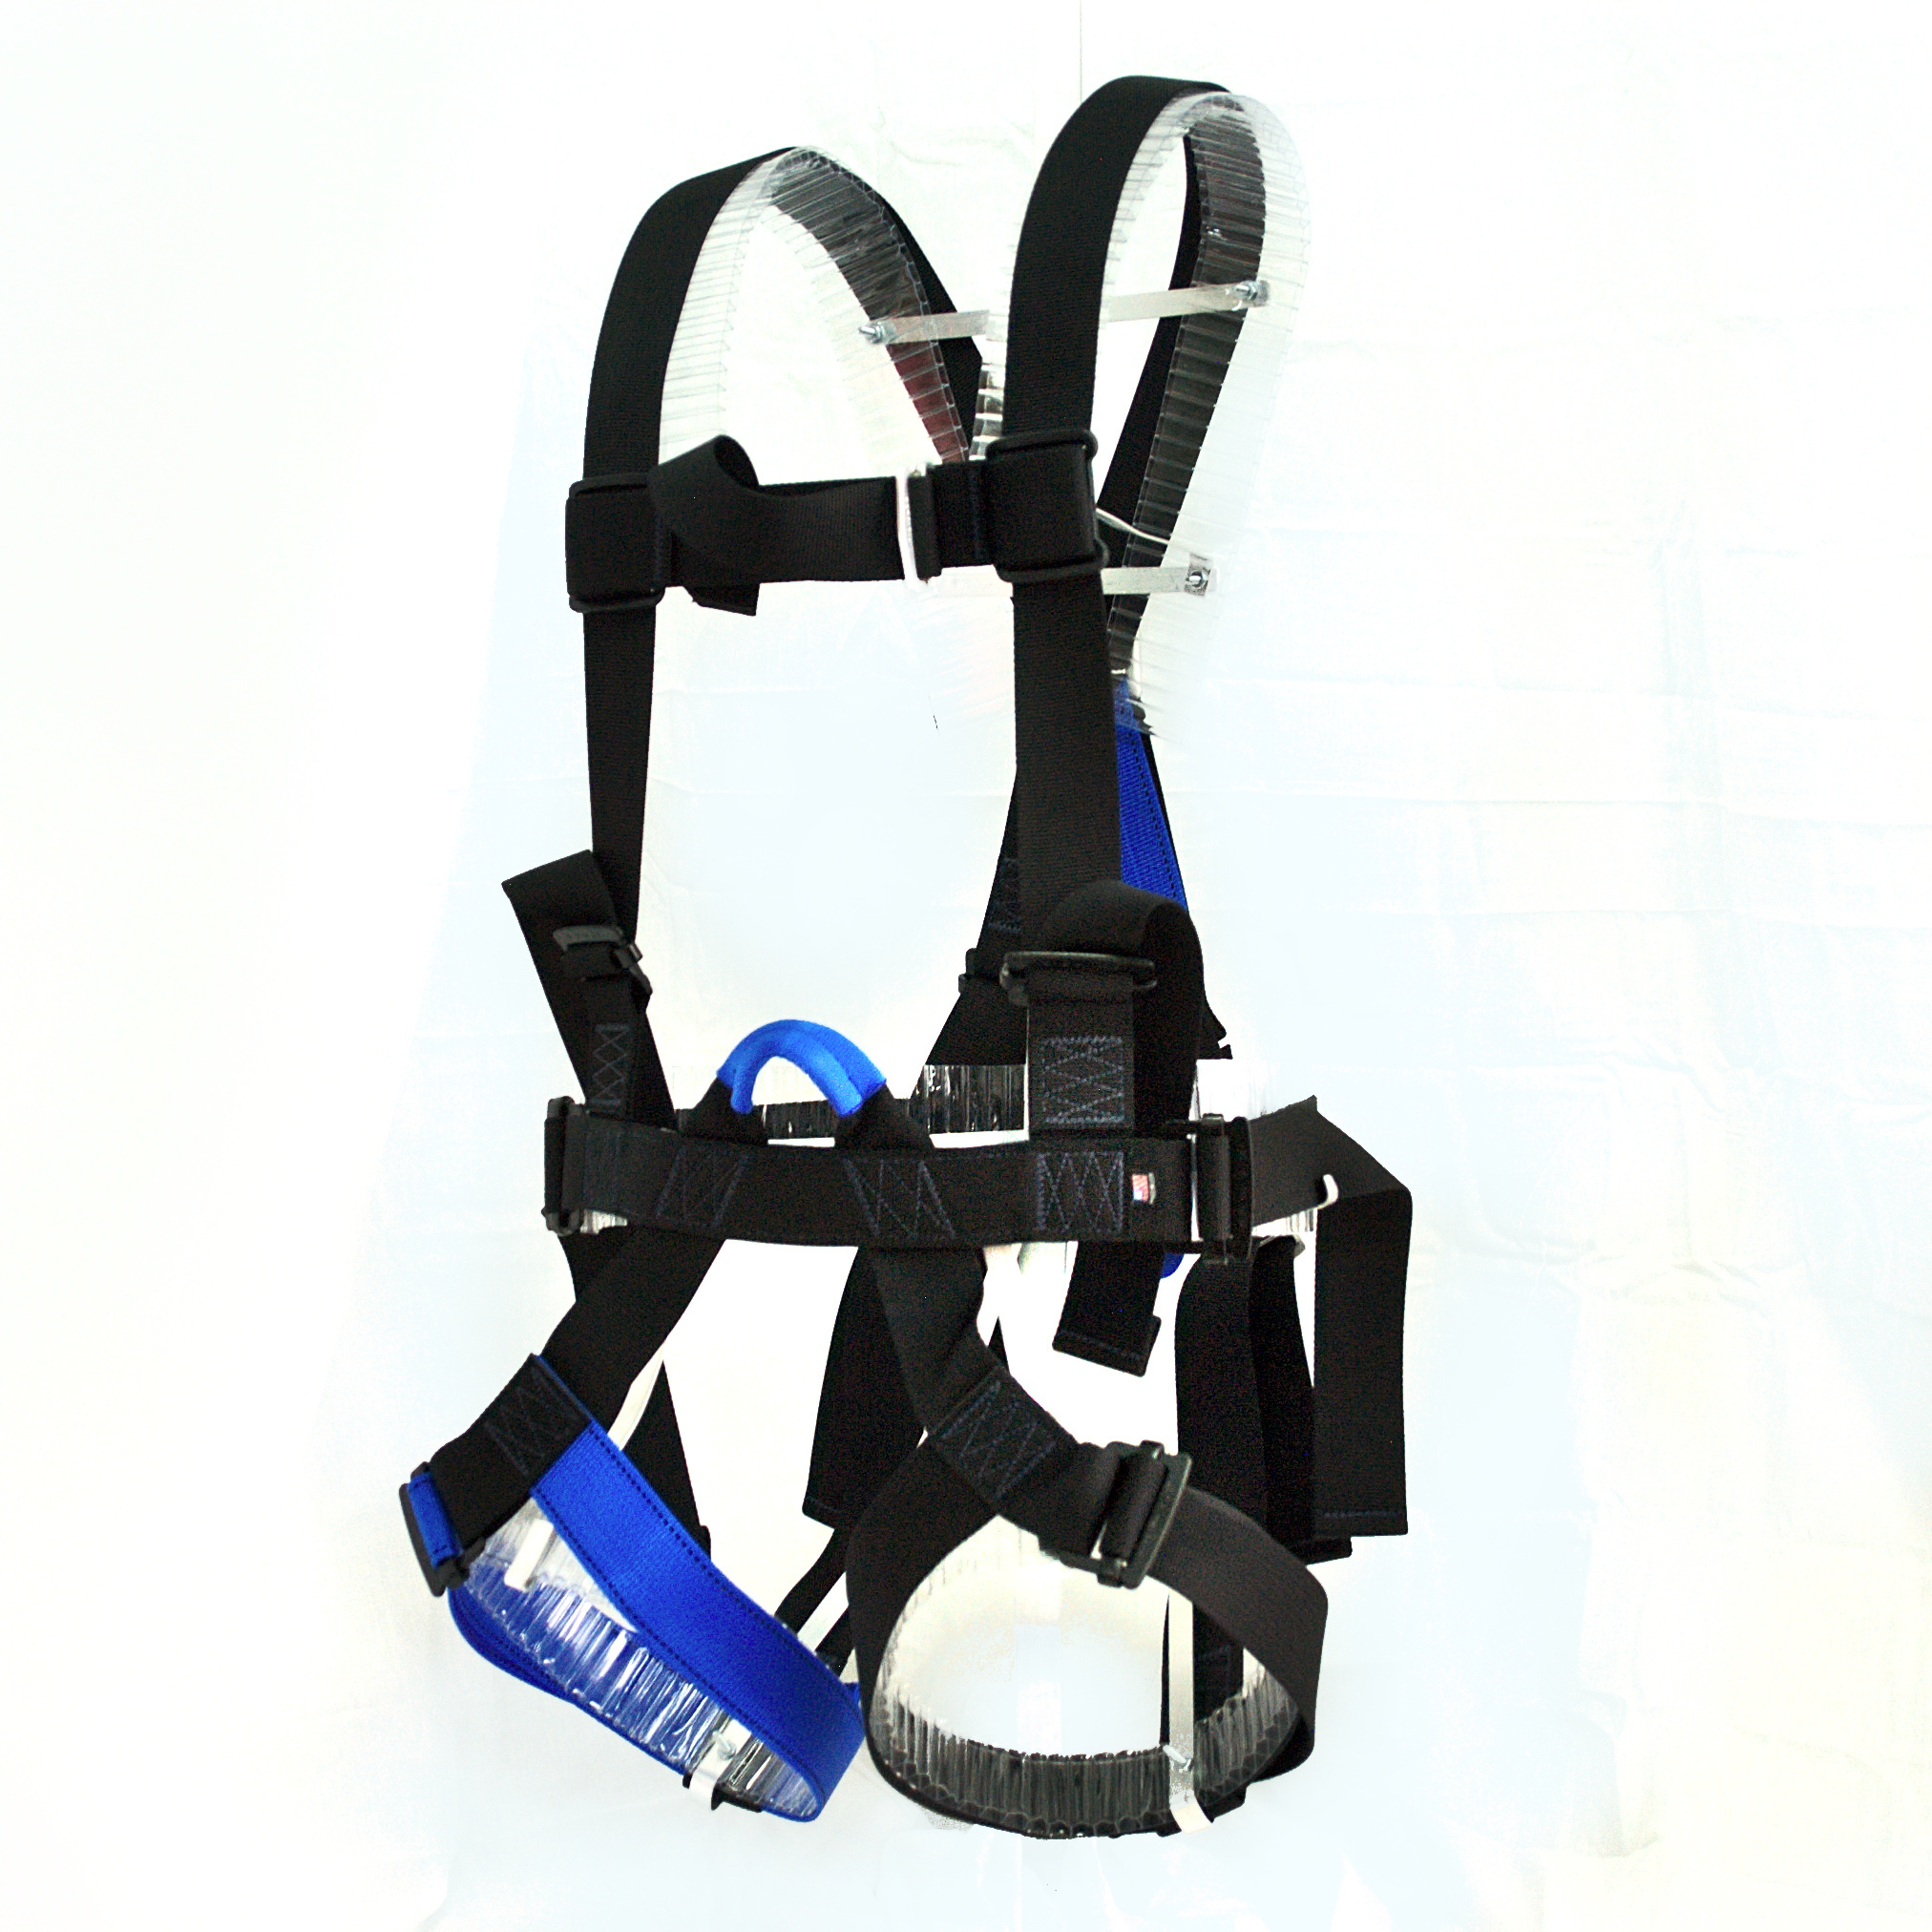 CRC 600 w/ Adjustable Dorsal - ANSI/ASSE Z359.11-2014  (Medium / Blue Belay)